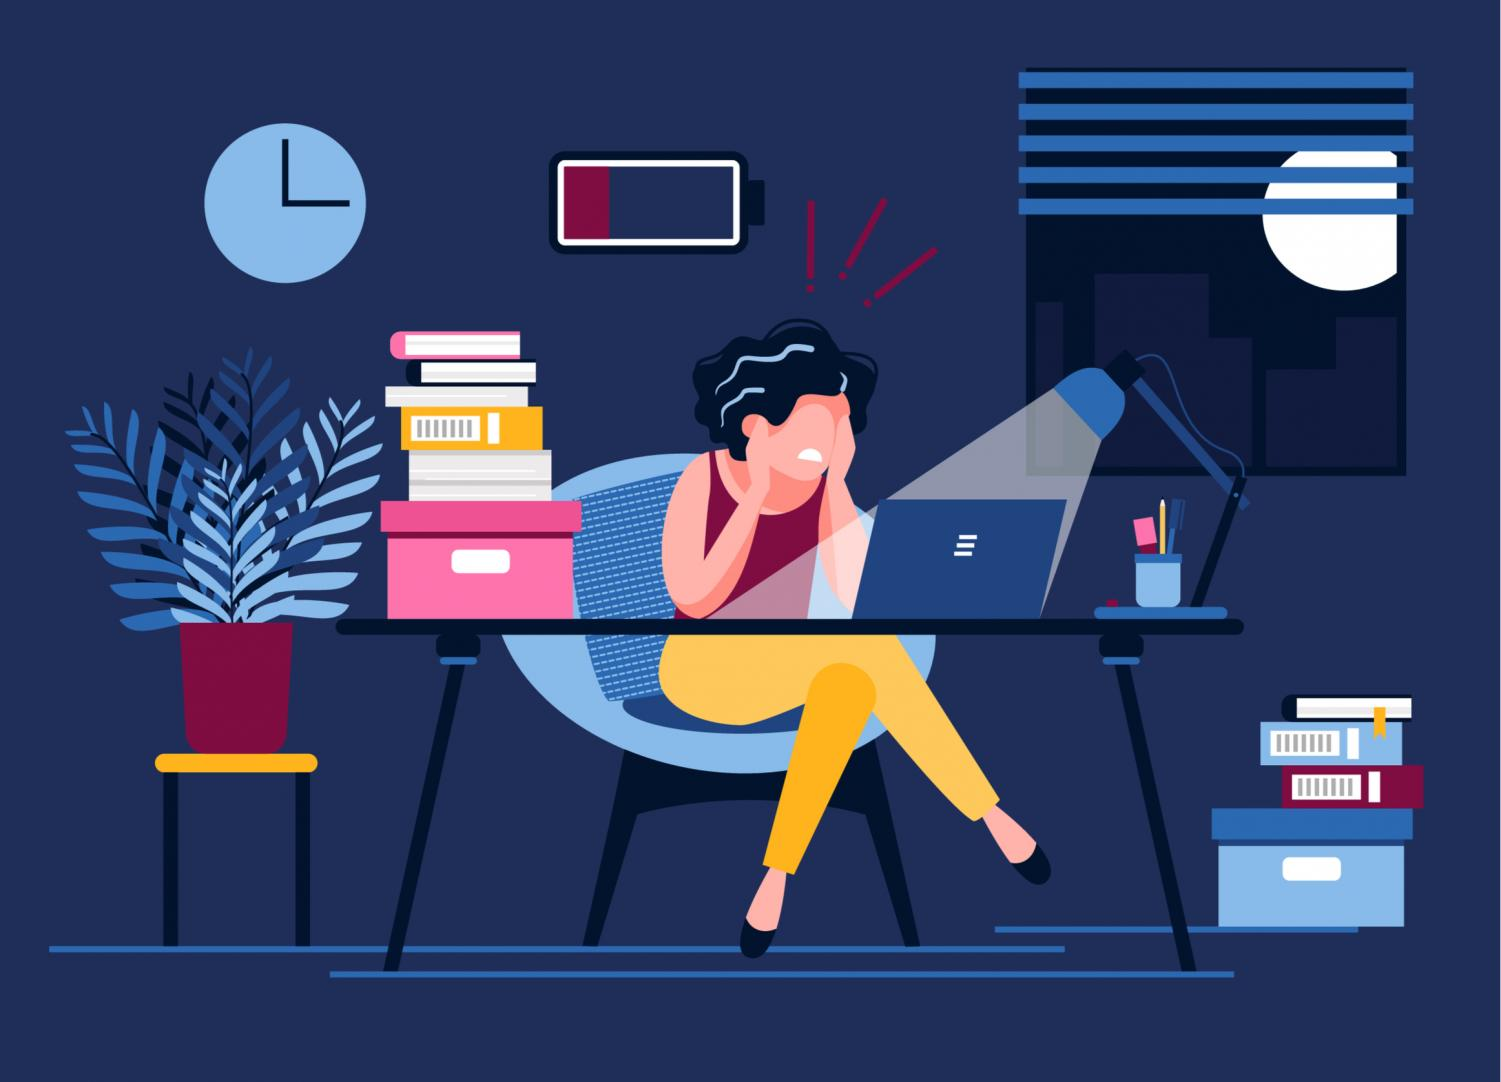 Burnout: What is it and Ways to Counter it